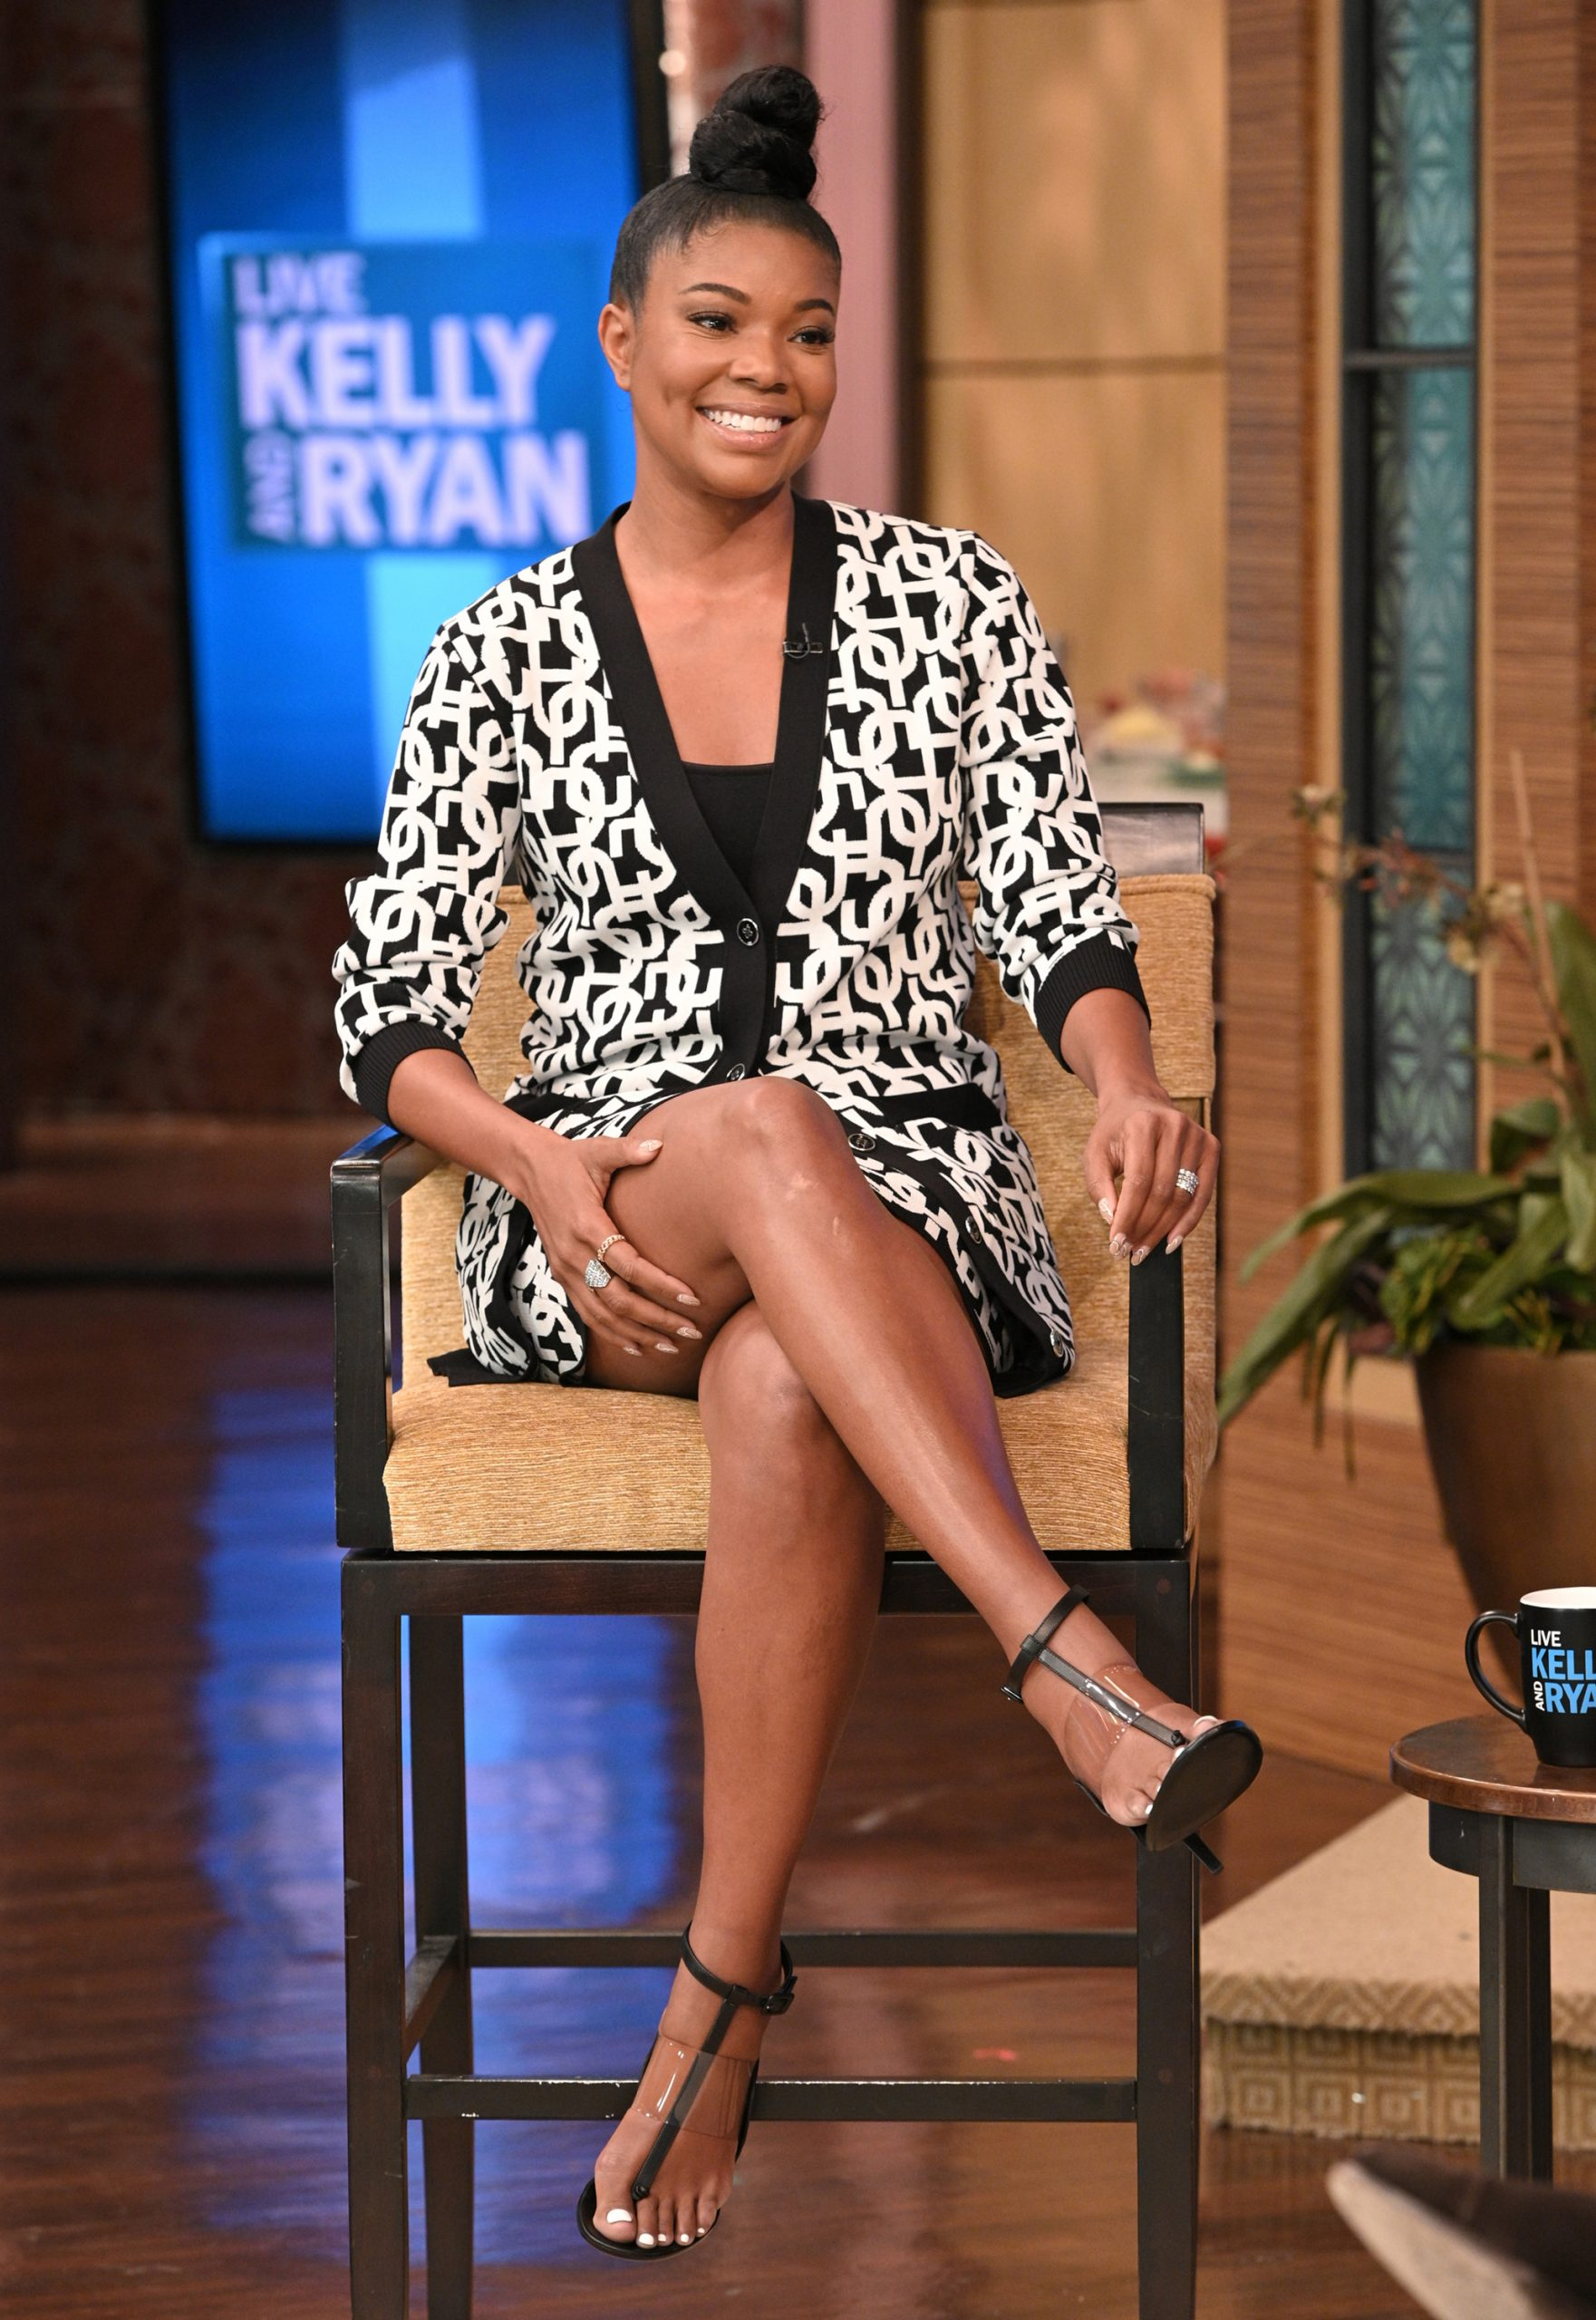 In Case You Missed It: Gabrielle Union On Live Kelly And Ryan